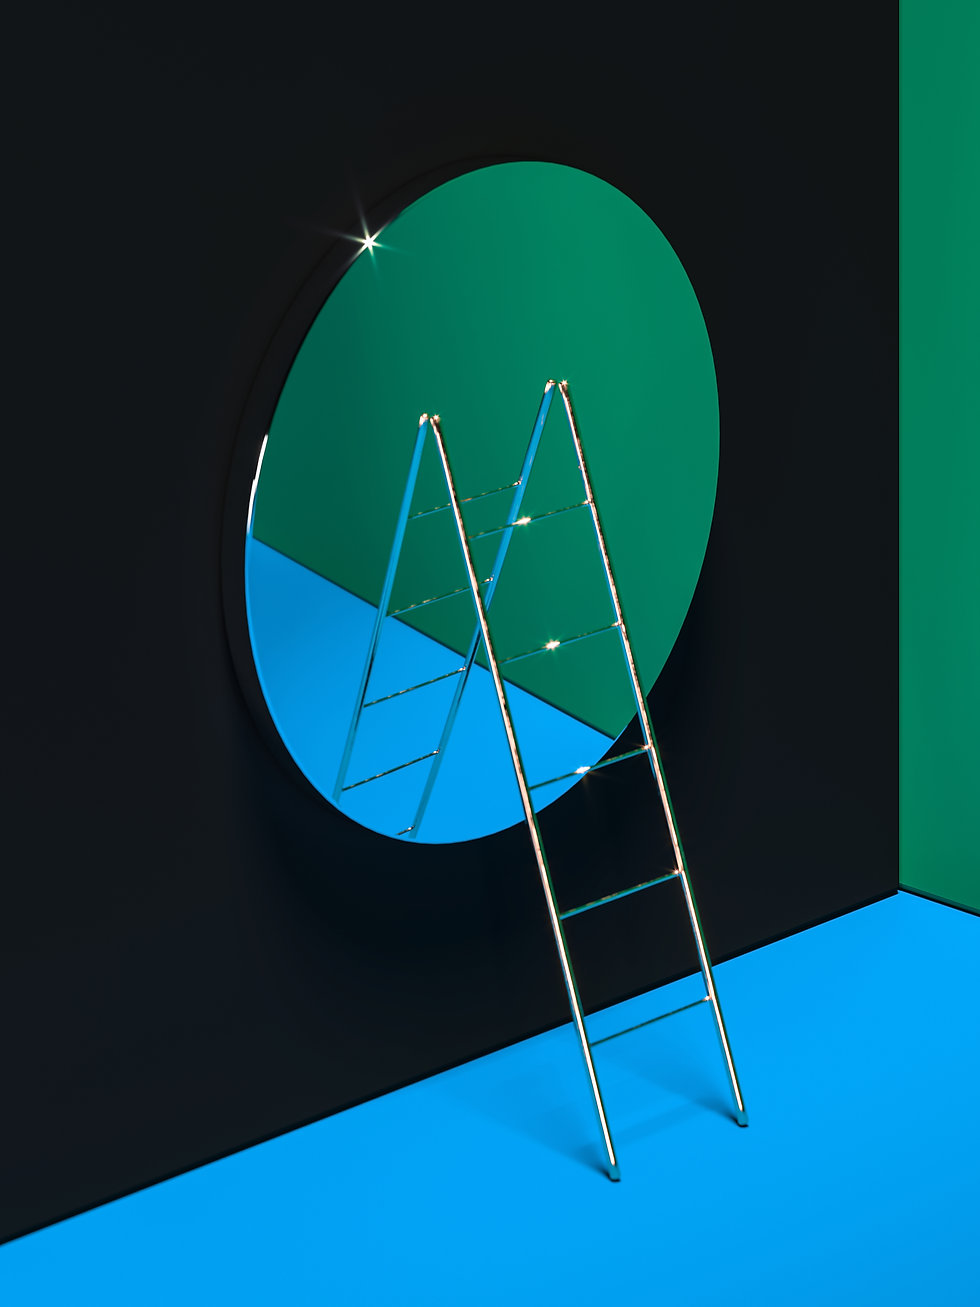 Shiny metal ladder leaning on a large round mirror